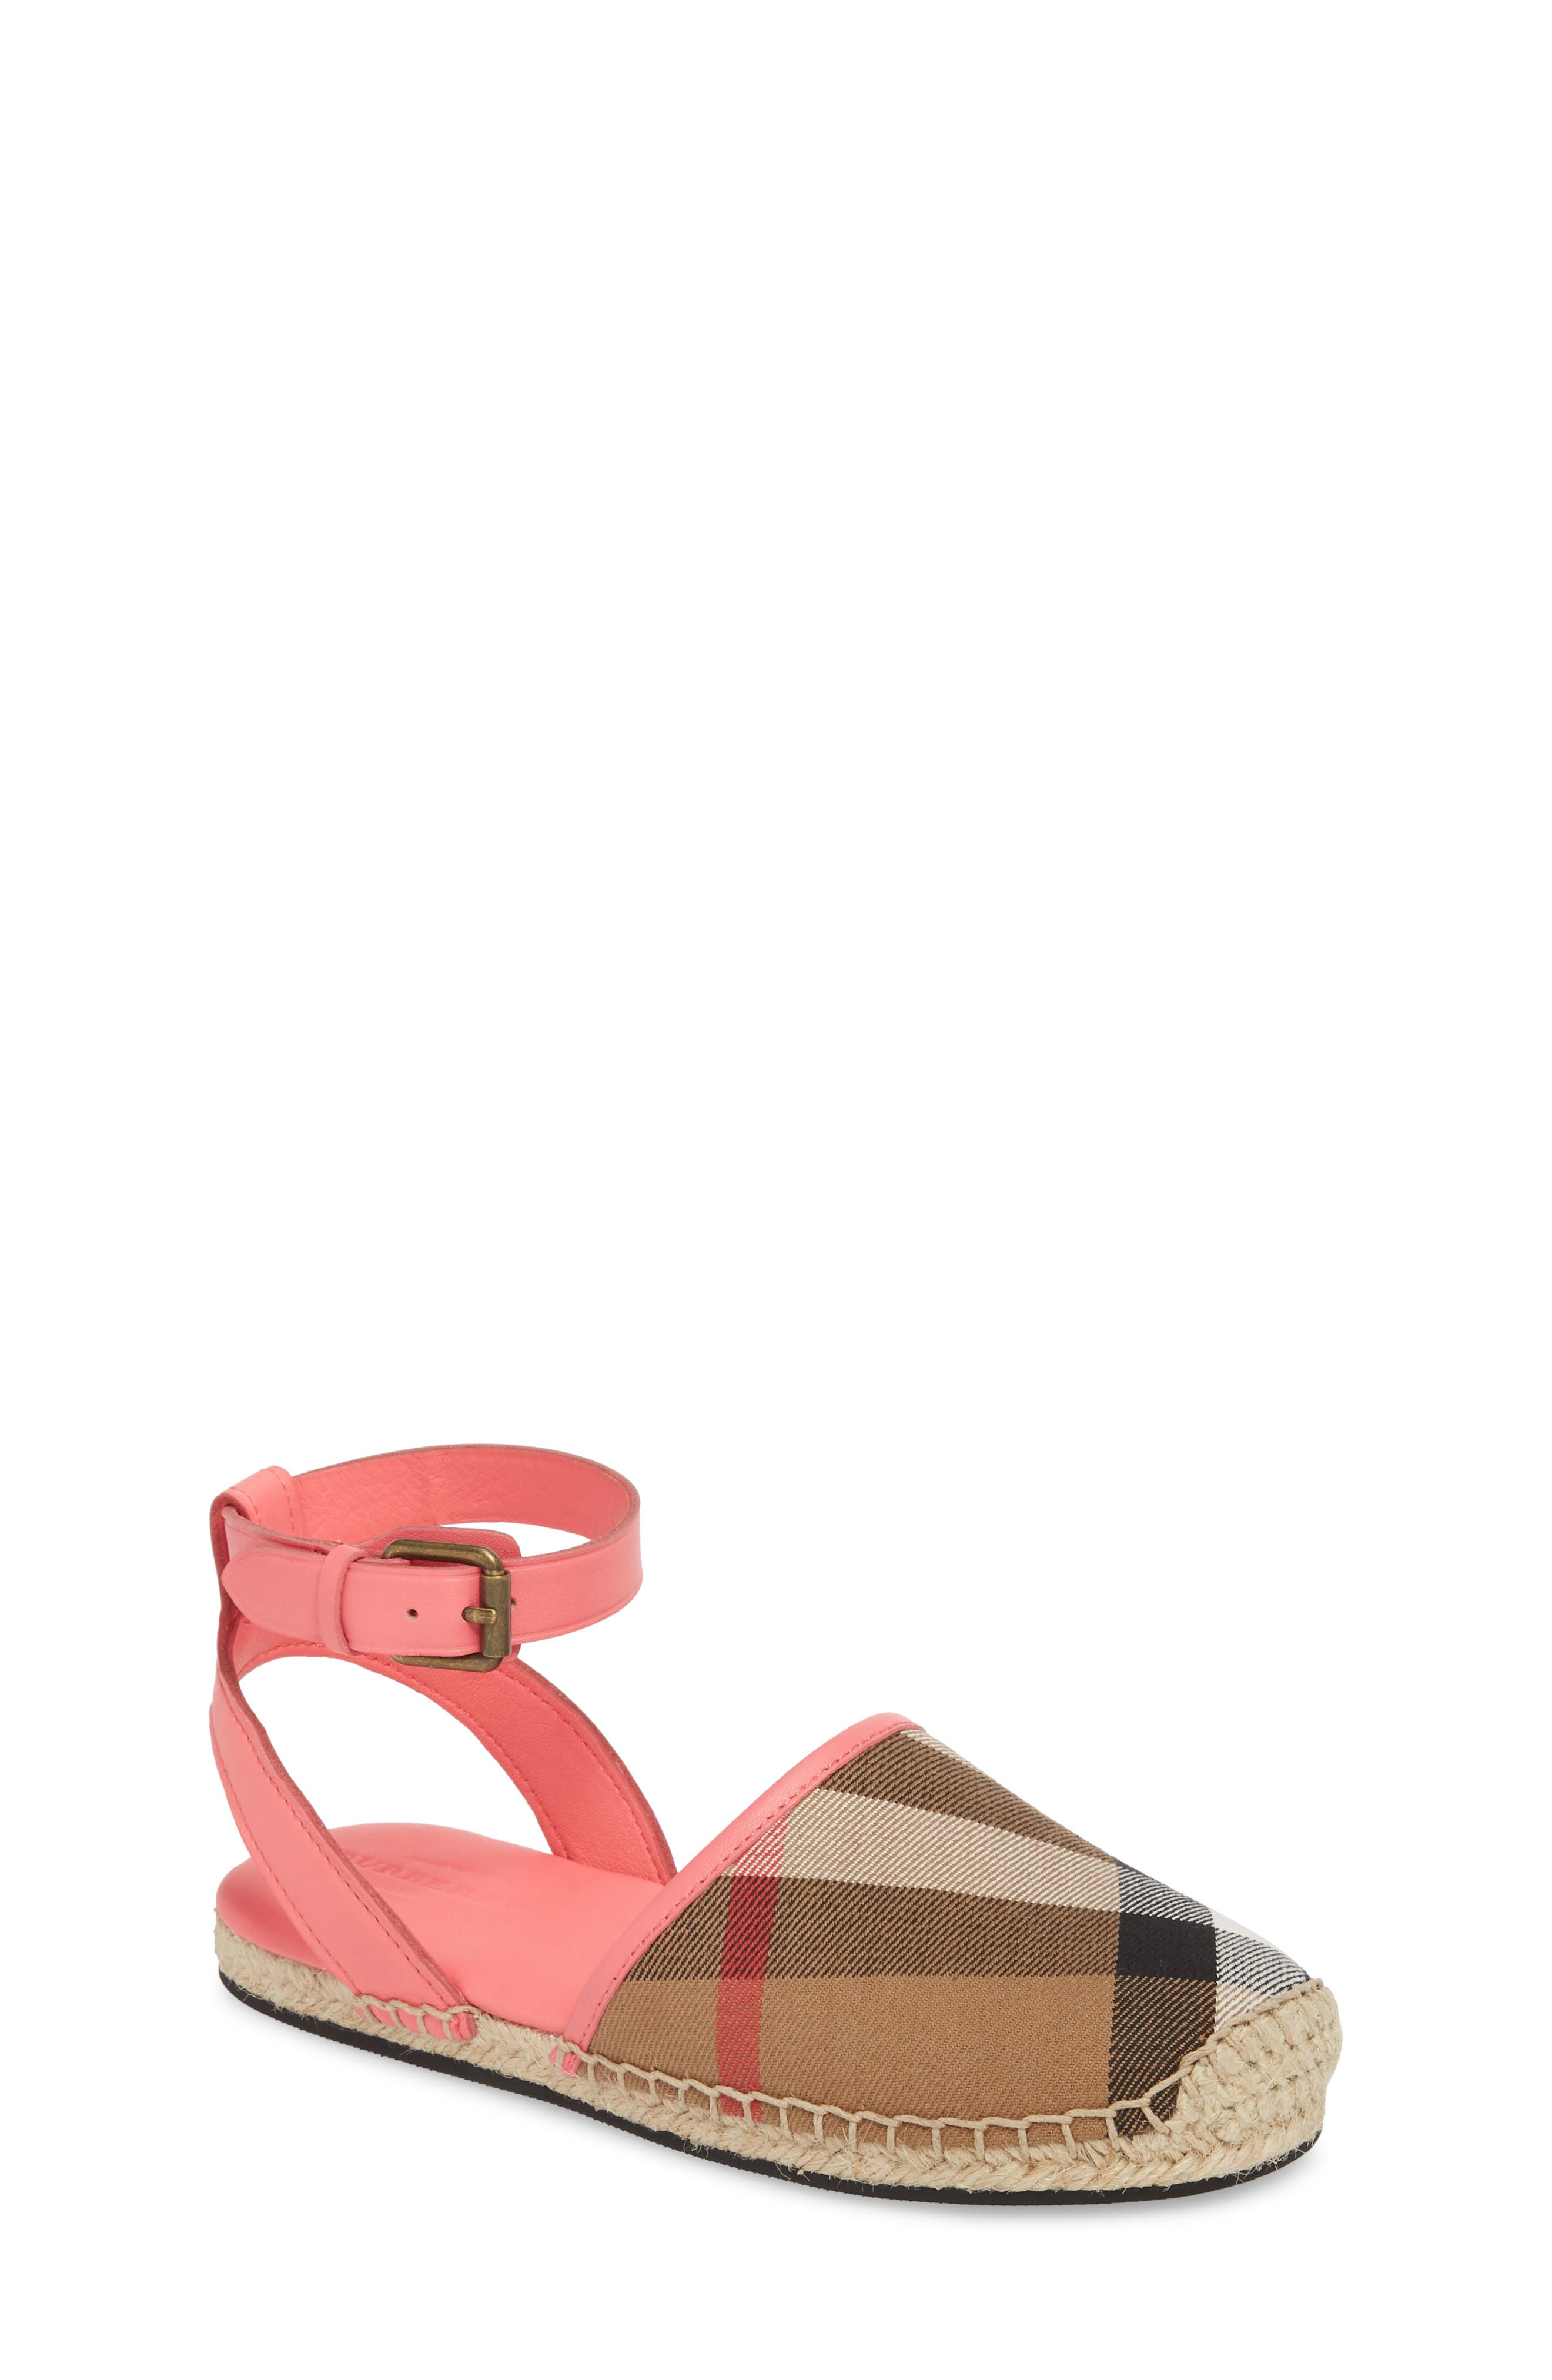 New Perth Espadrille Sandal,                             Main thumbnail 1, color,                             676